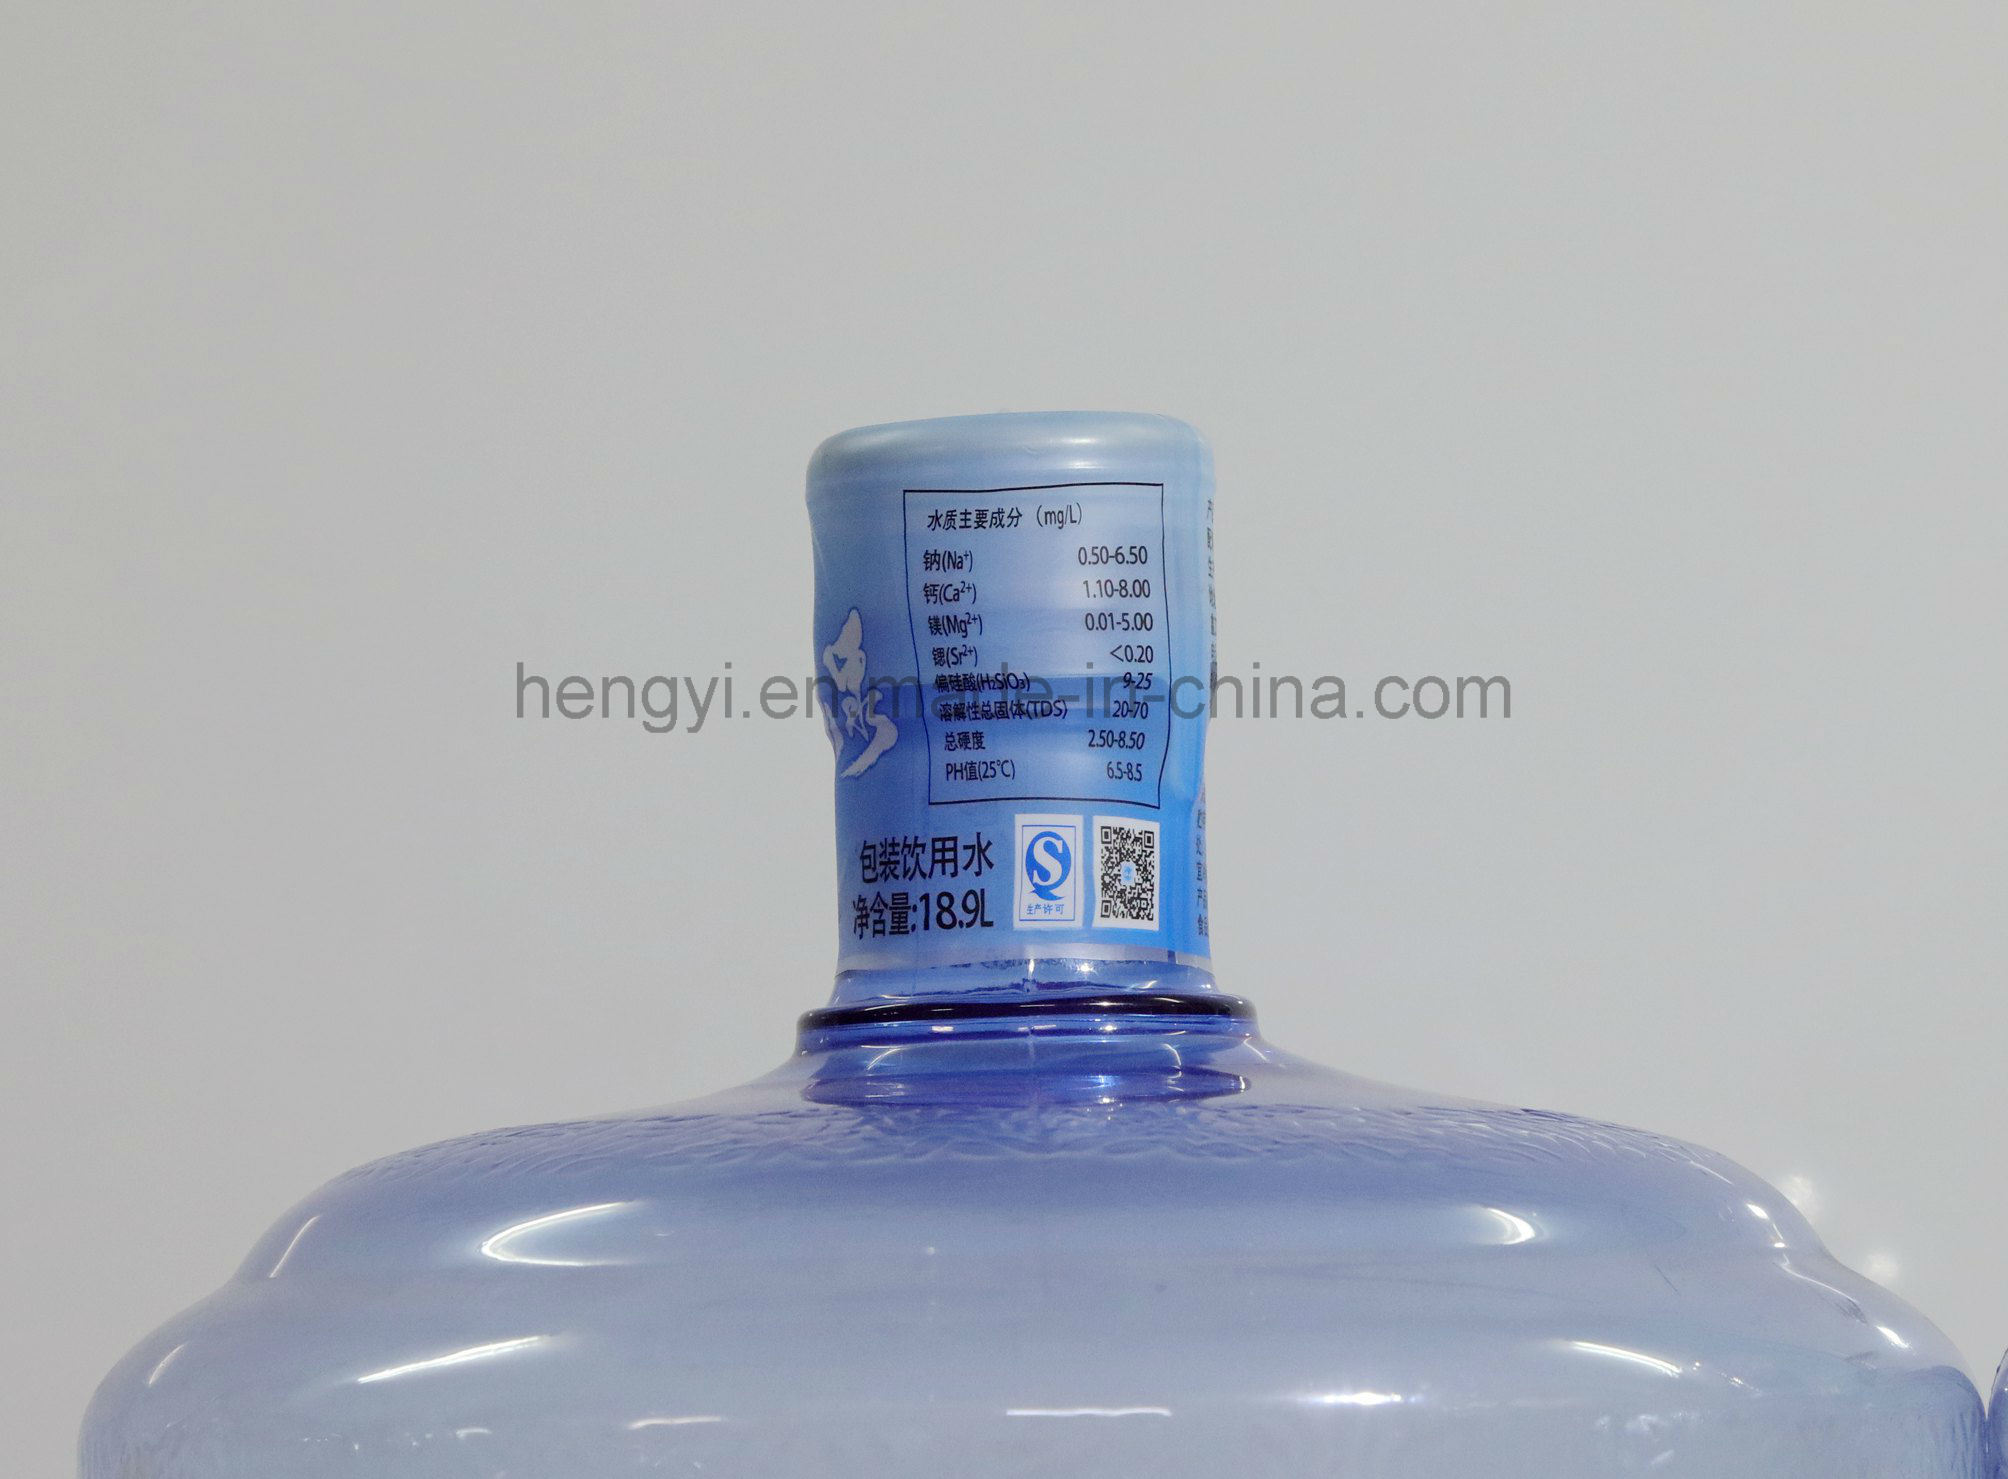 Printed Shrinkable PVC Label for Bottle Cap (Shrink Bands)